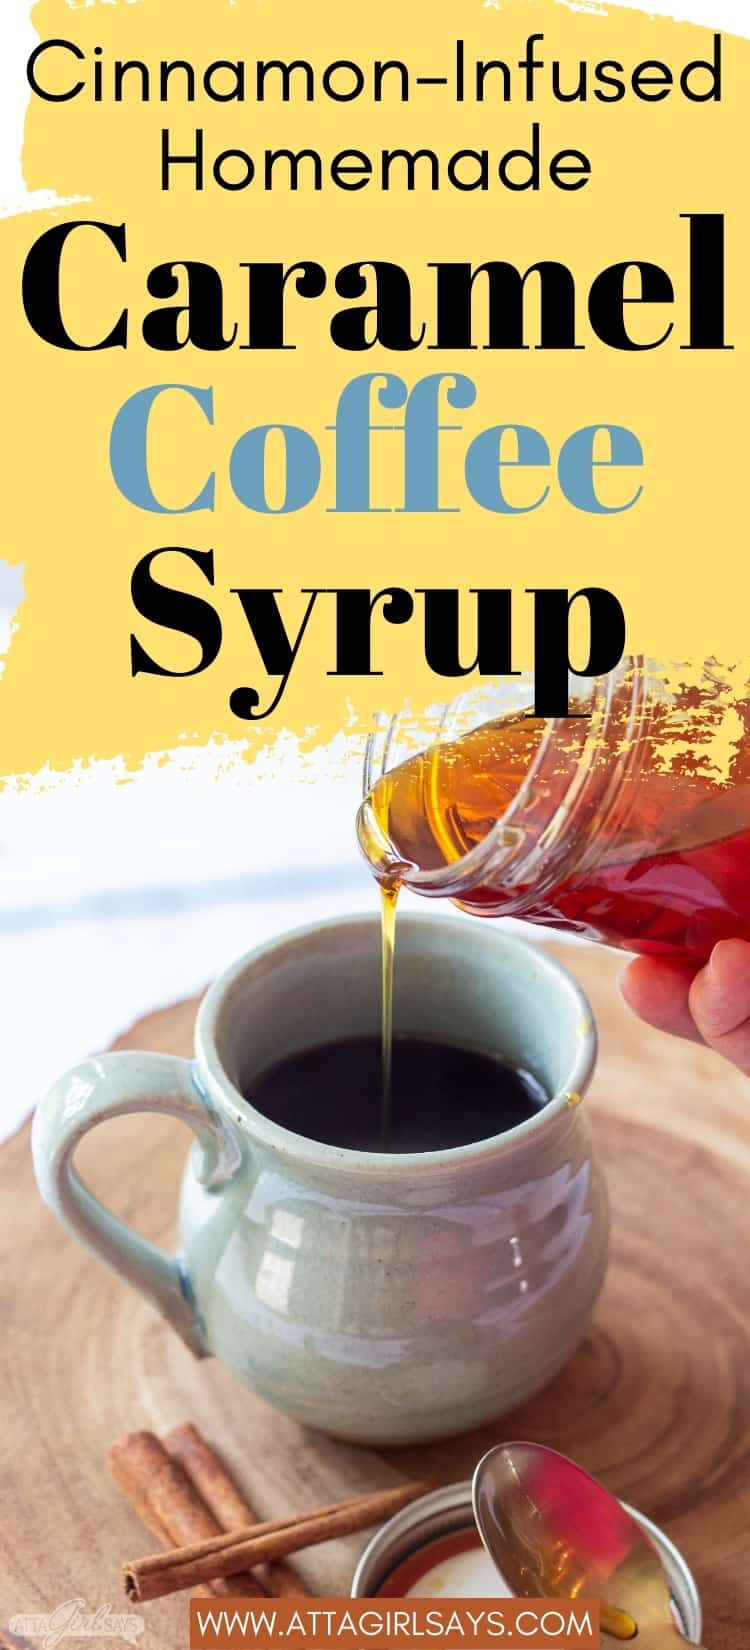 pouring caramel syrup from a jar into a coffee mug